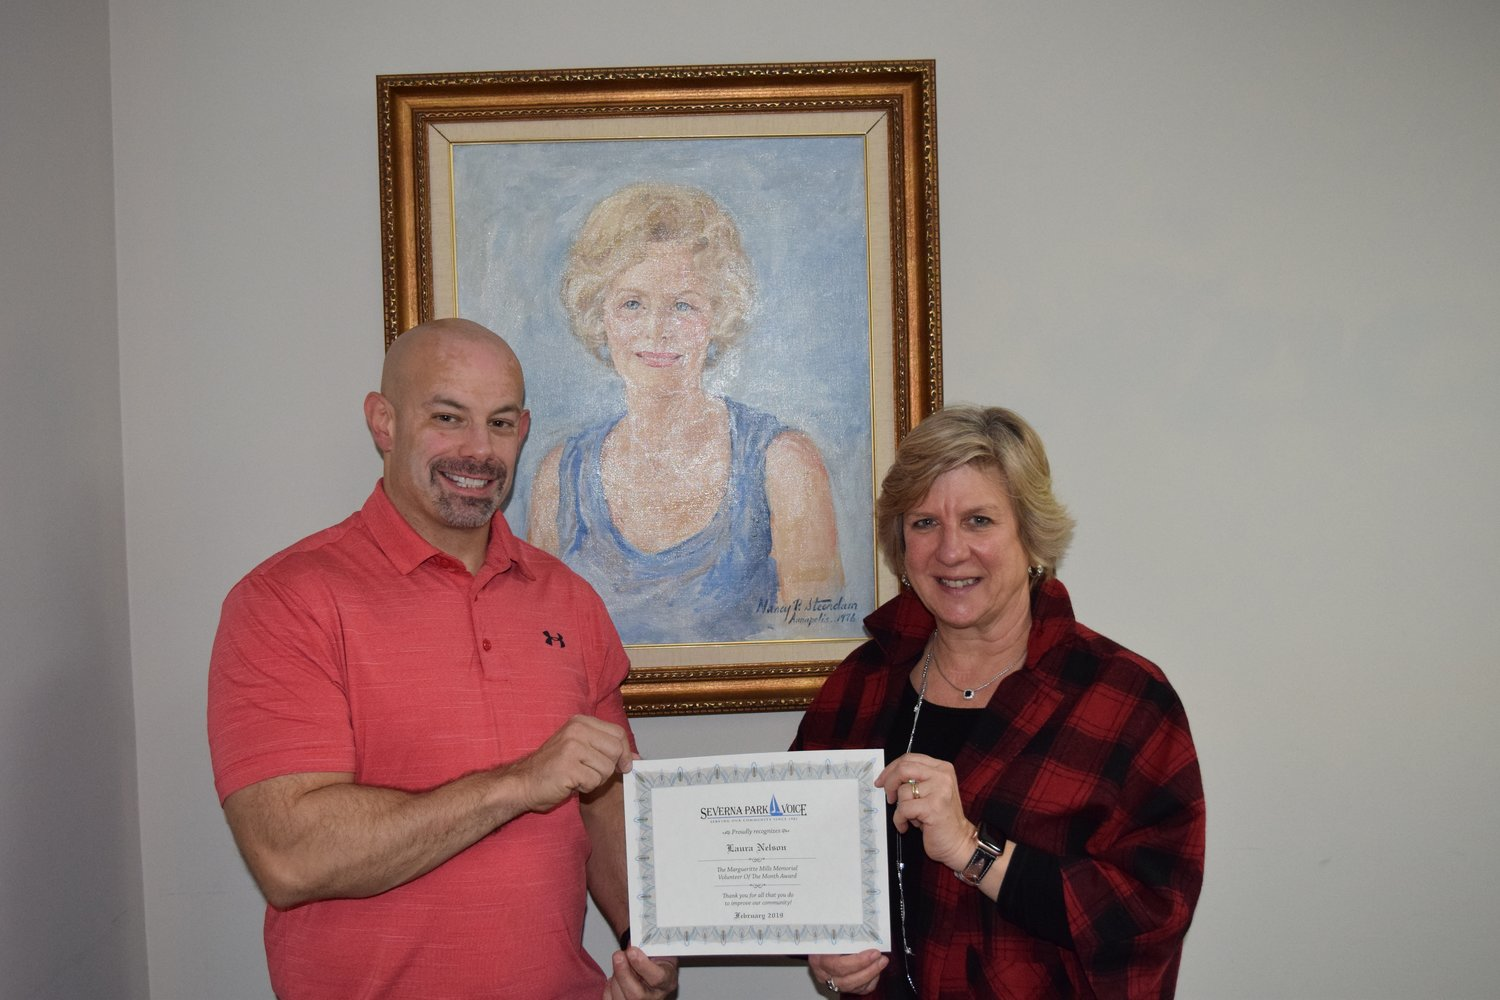 Winter Relief coordinator Laura Nelson received her Volunteer of the Month certificate from Voice vice president of operations Brian Lancione.